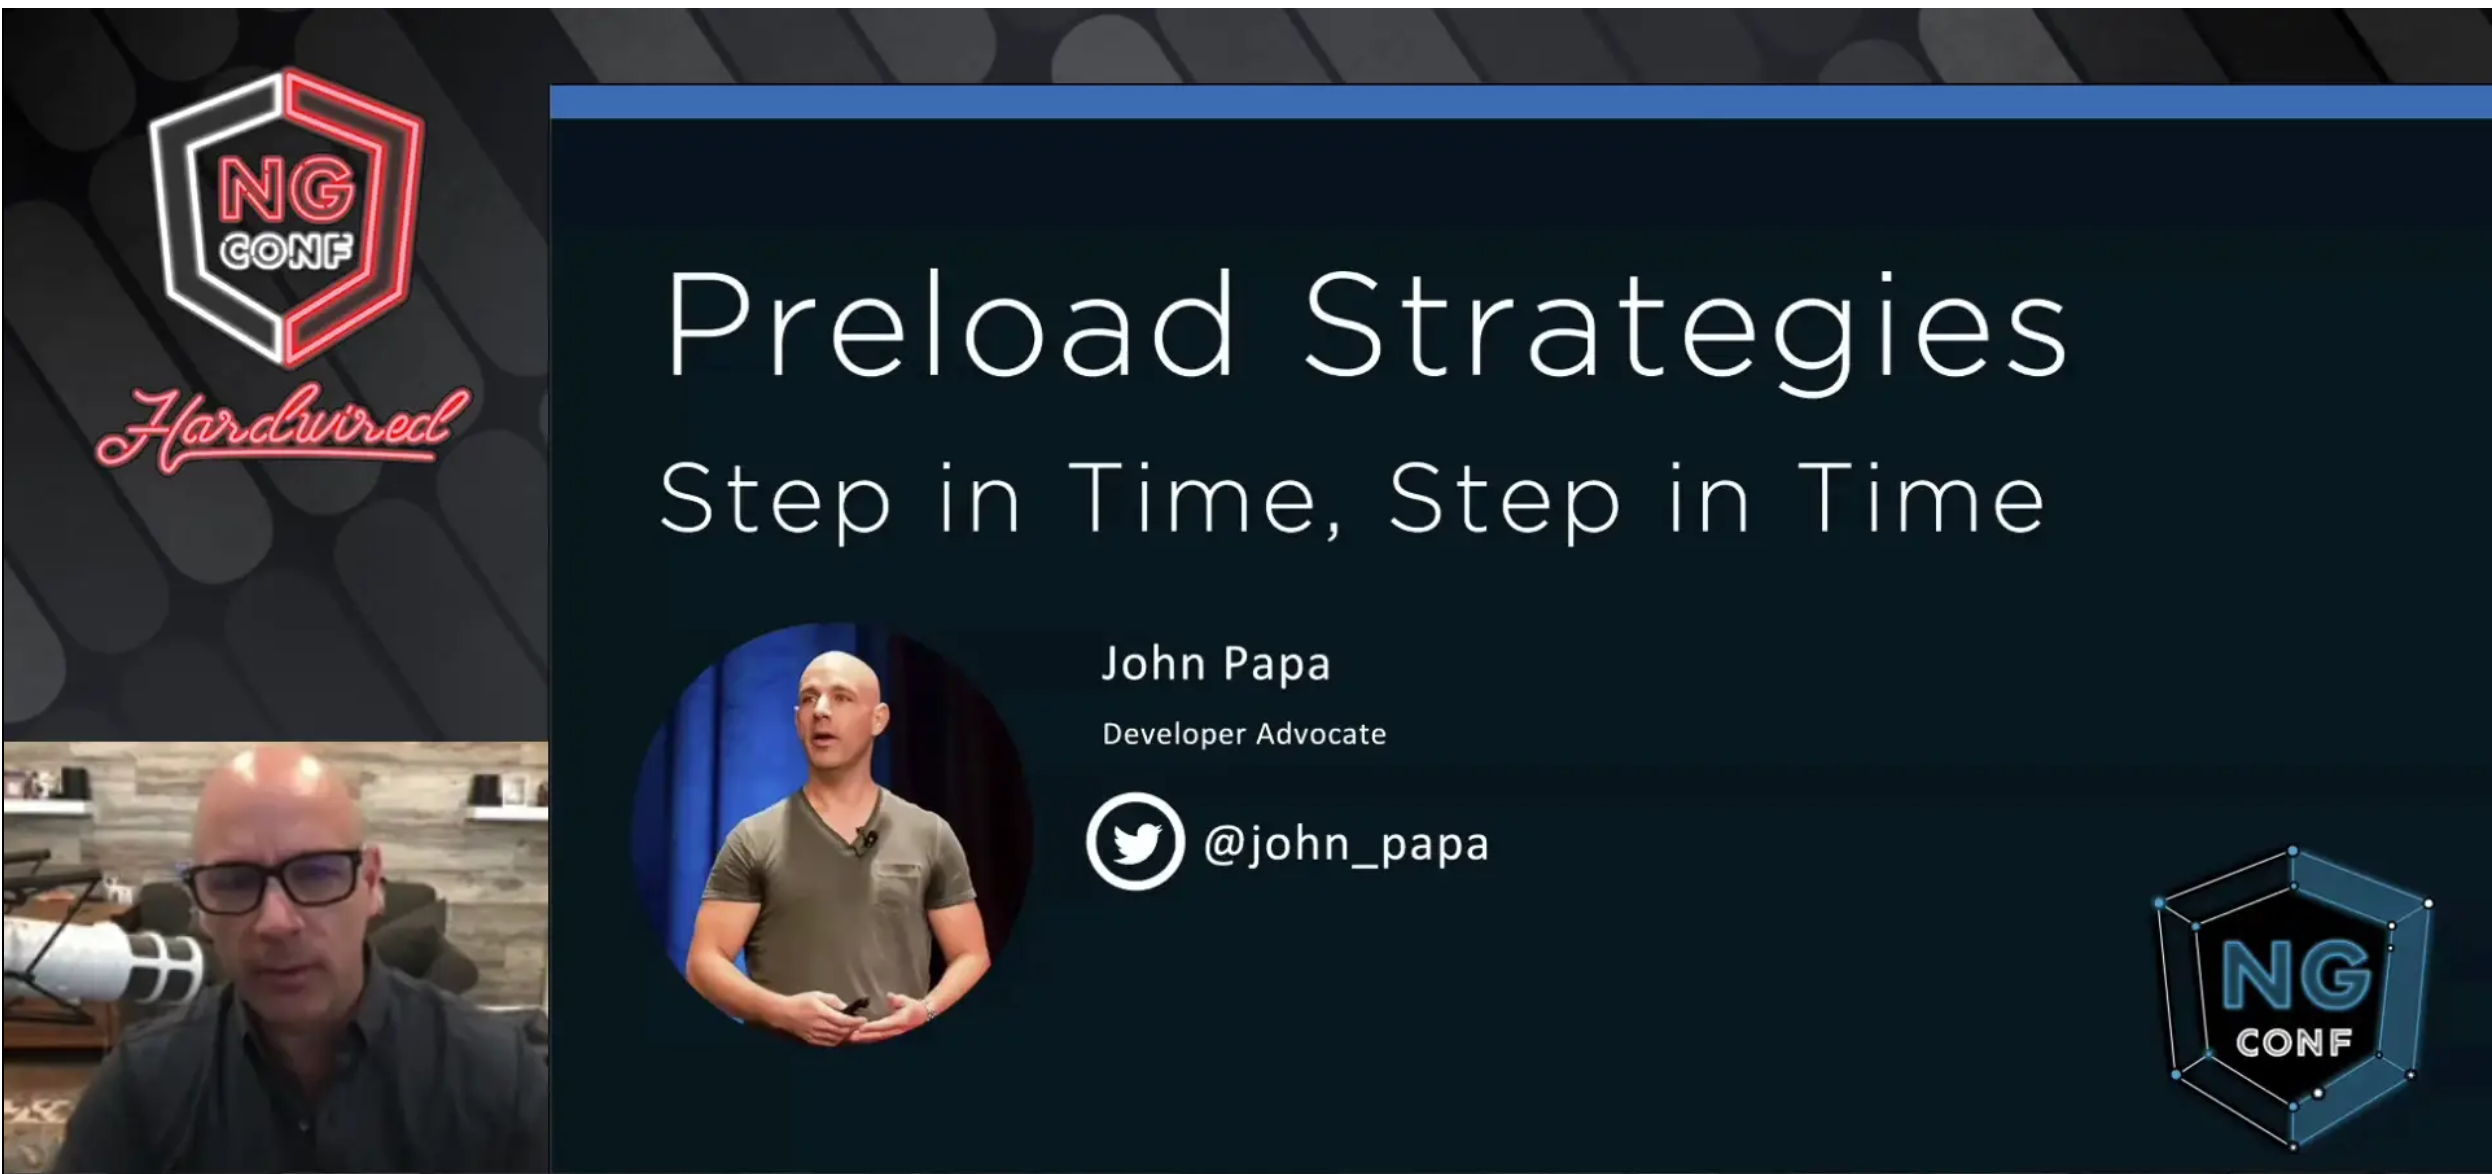 Preload Strategies: Step in Time, Step in Time!